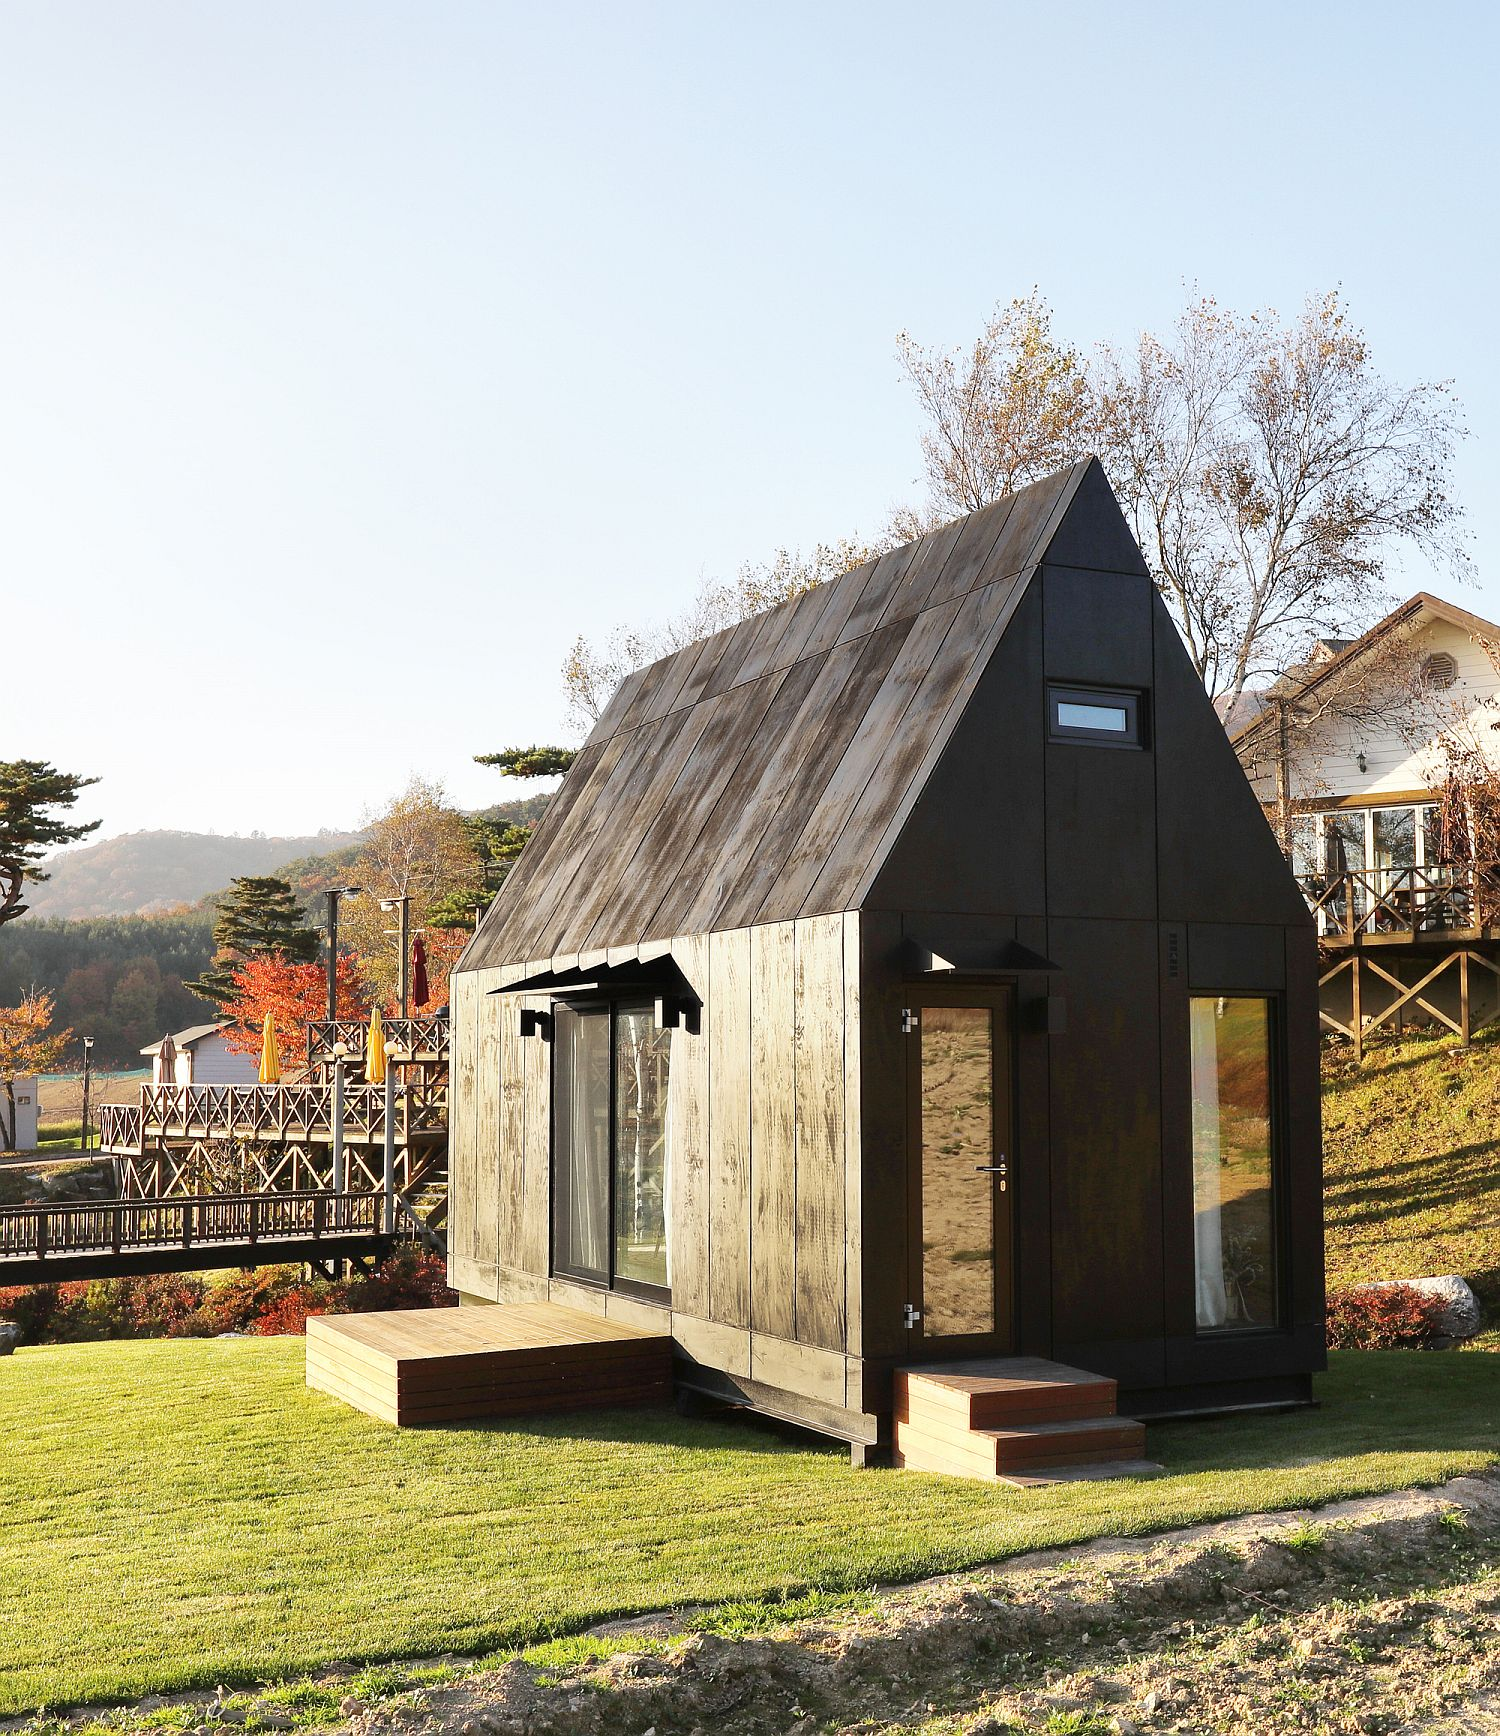 Space-savvy and eco-freindly tiny cabin design